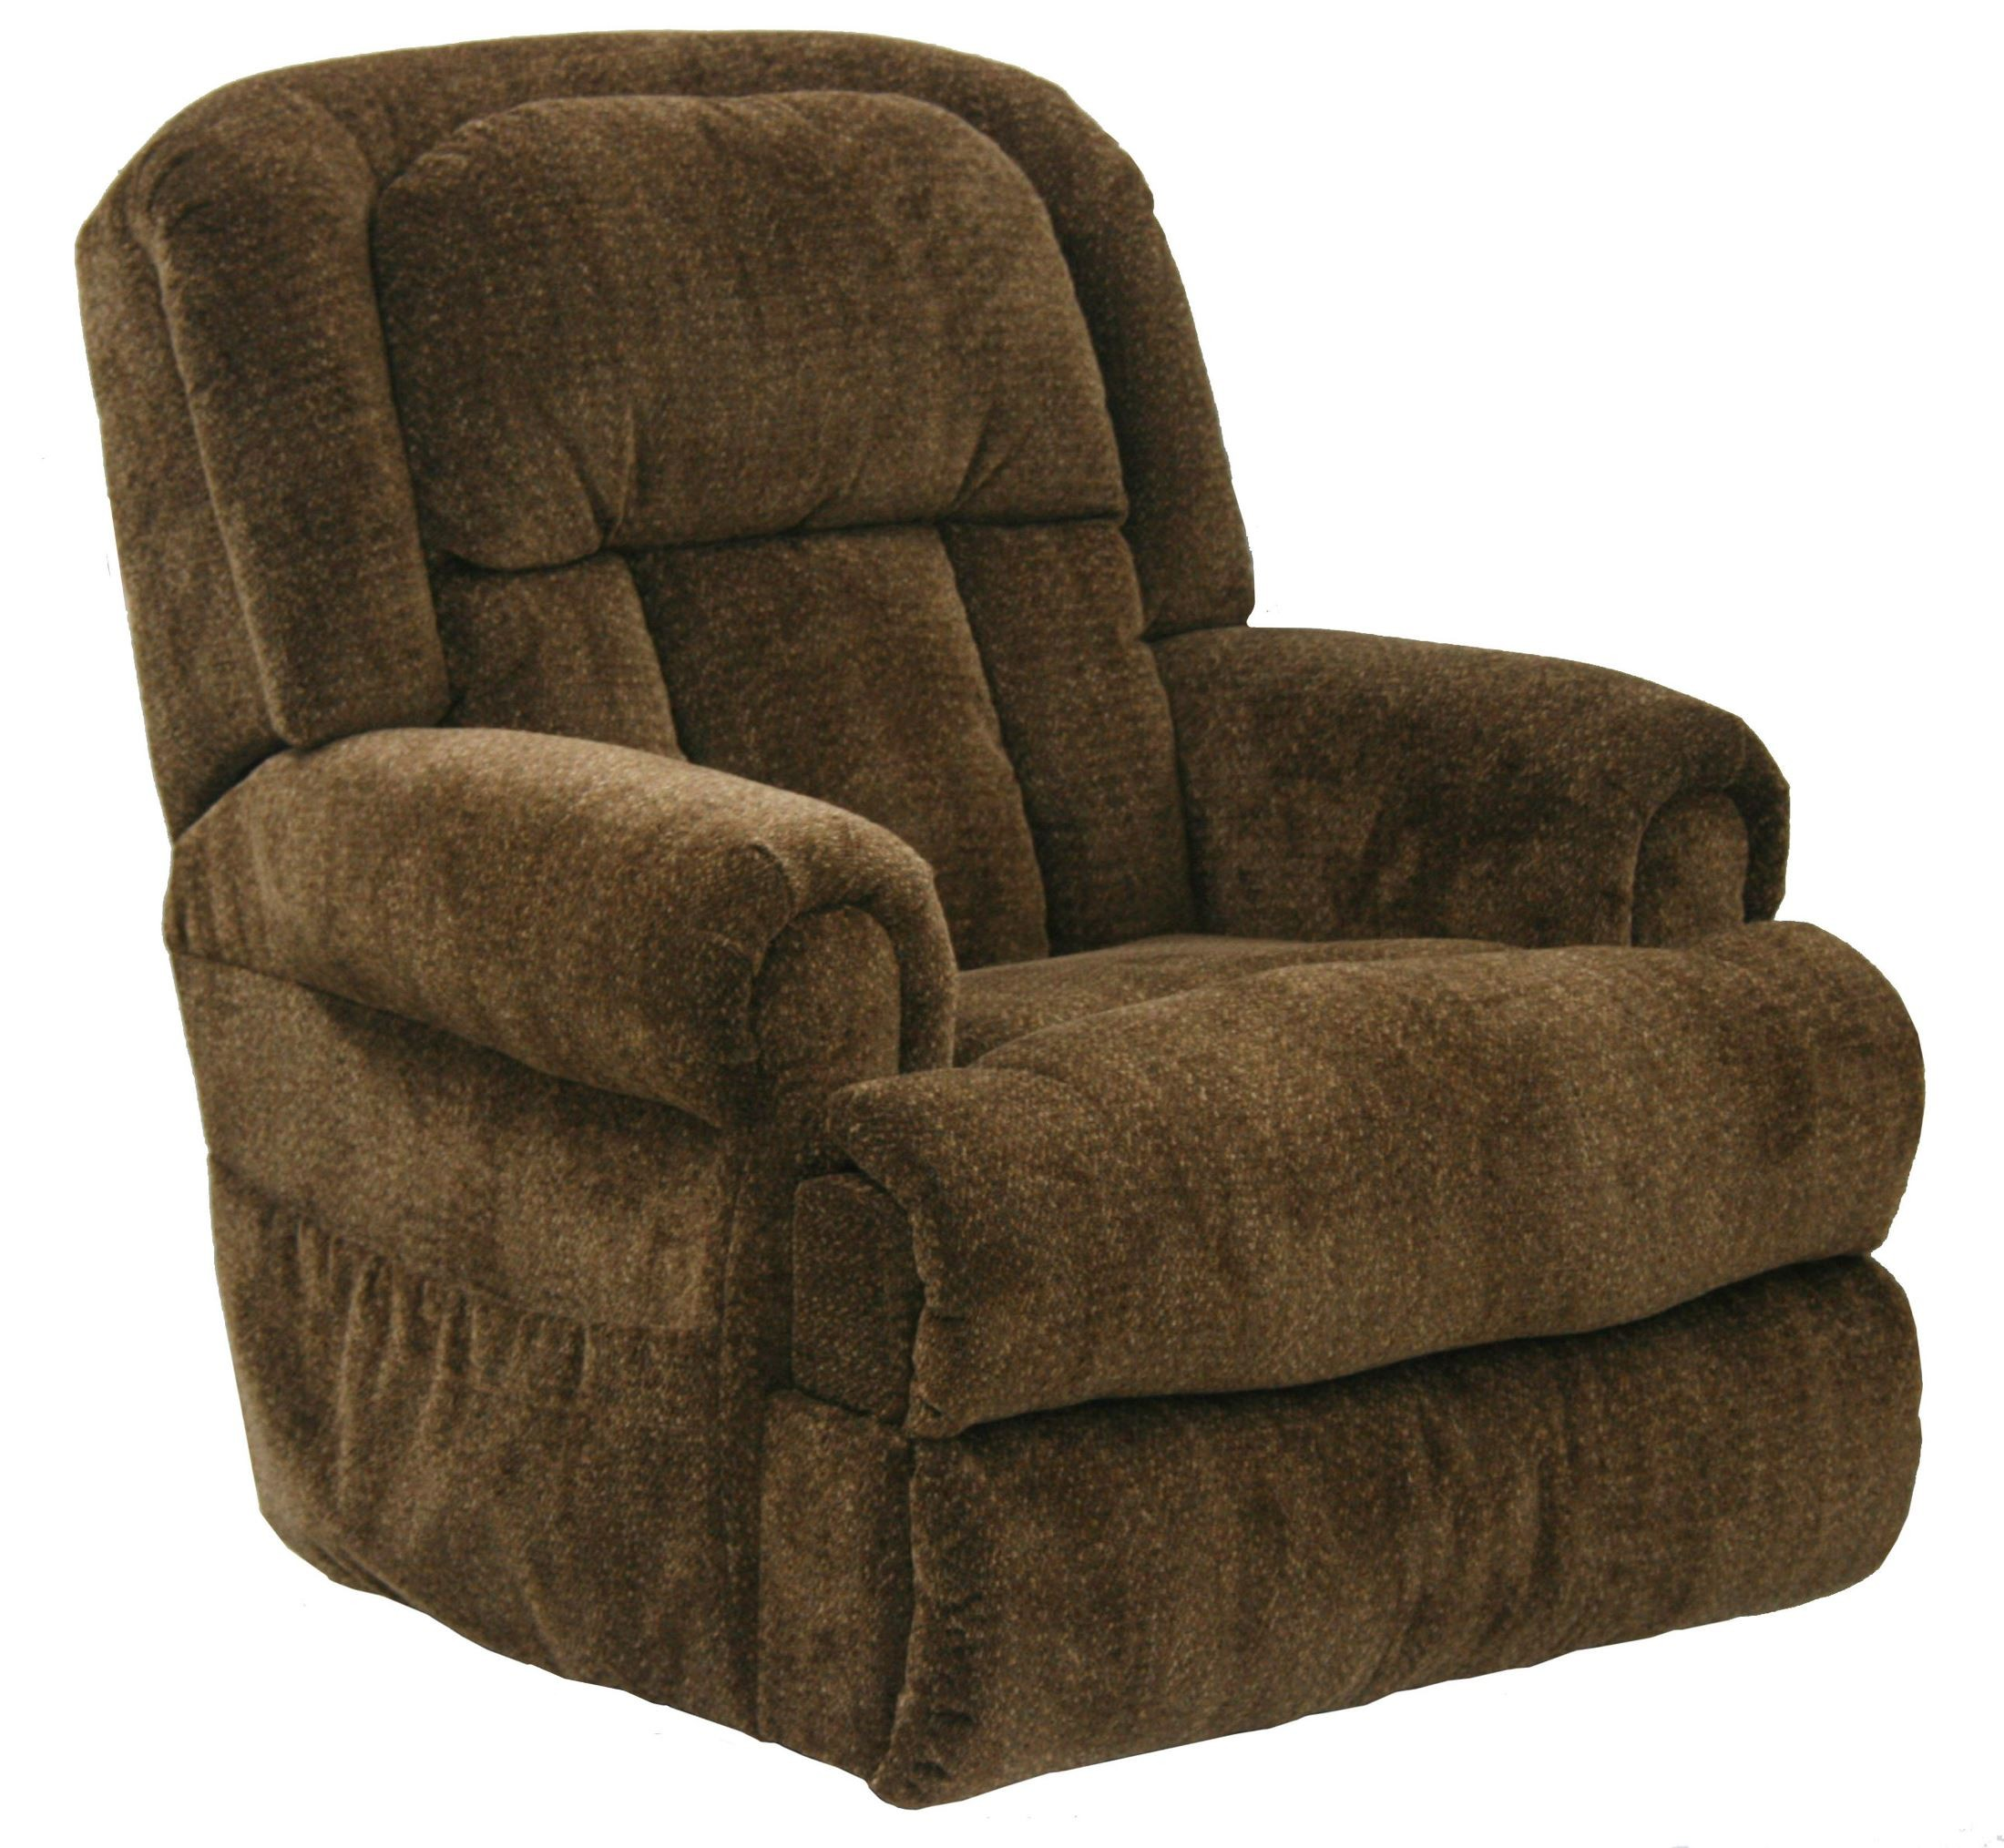 Burns earth power lift recliner from catnapper 4847176329 for Catnapper cloud nine chaise recliner